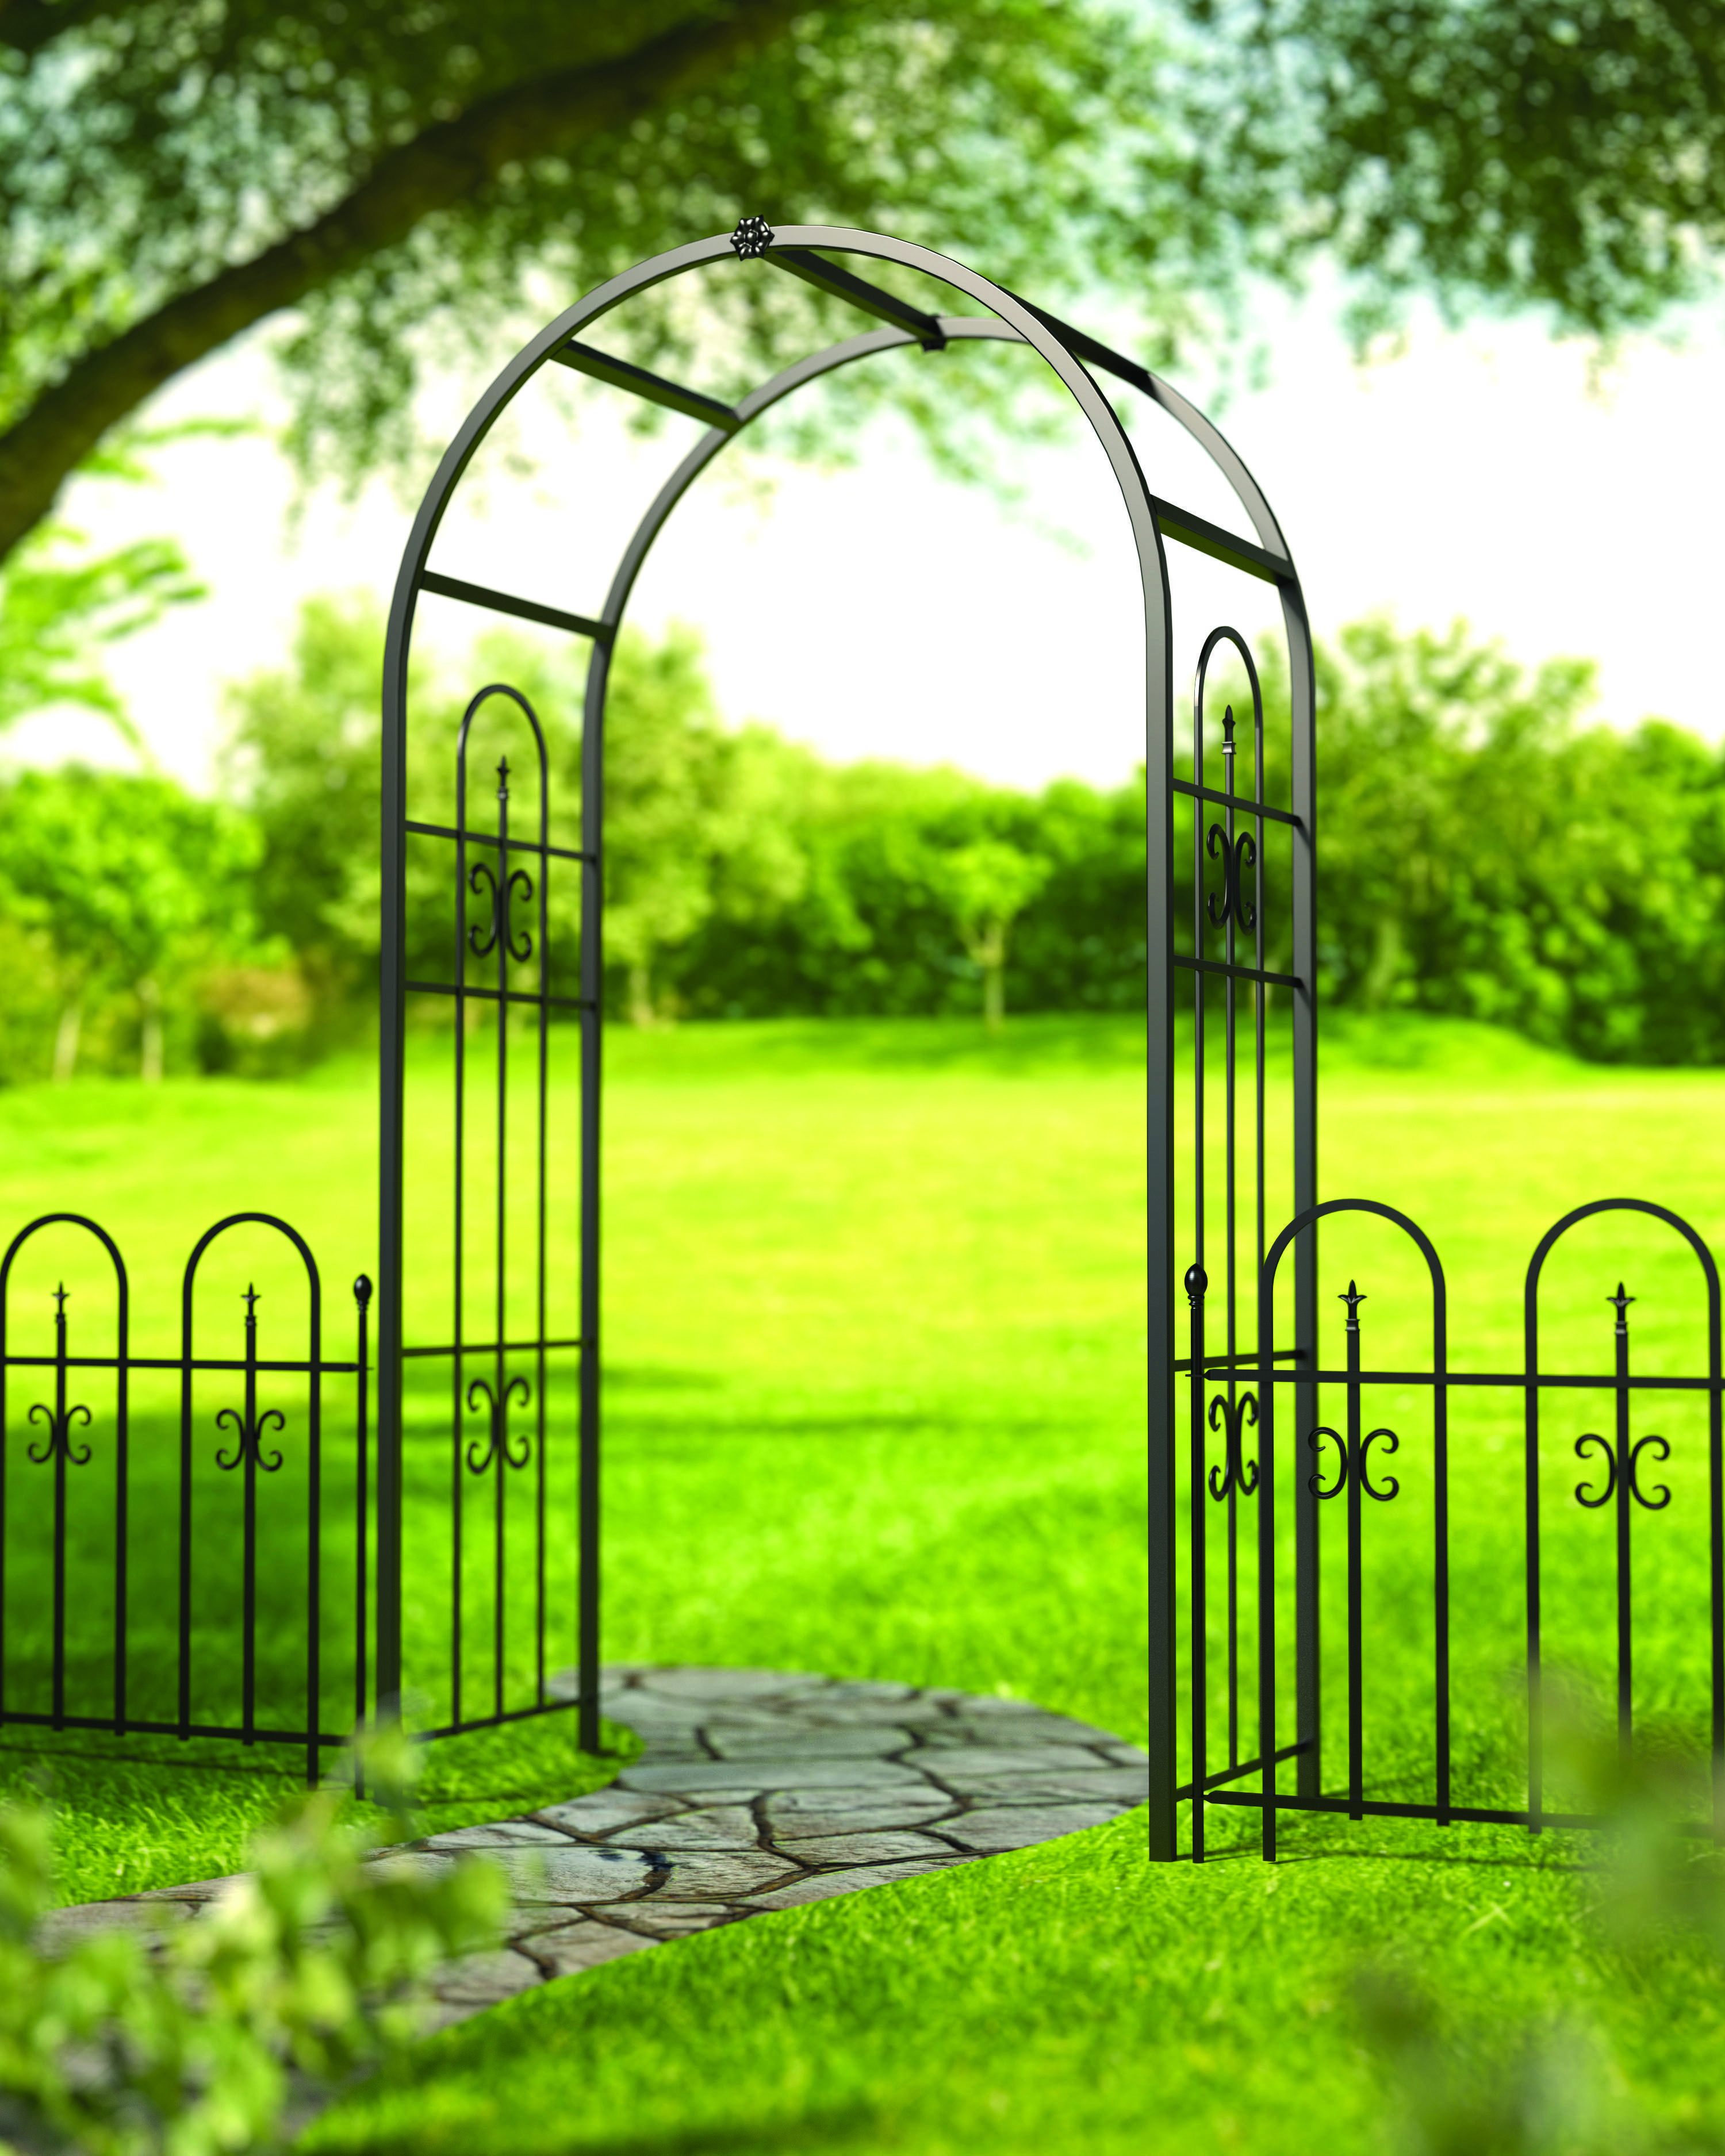 A Rugged New Steel Broadway Arbor With An Arched Top Provides A Grand Entrance To This Garden Garden Archway Garden Gate Design Garden Stairs